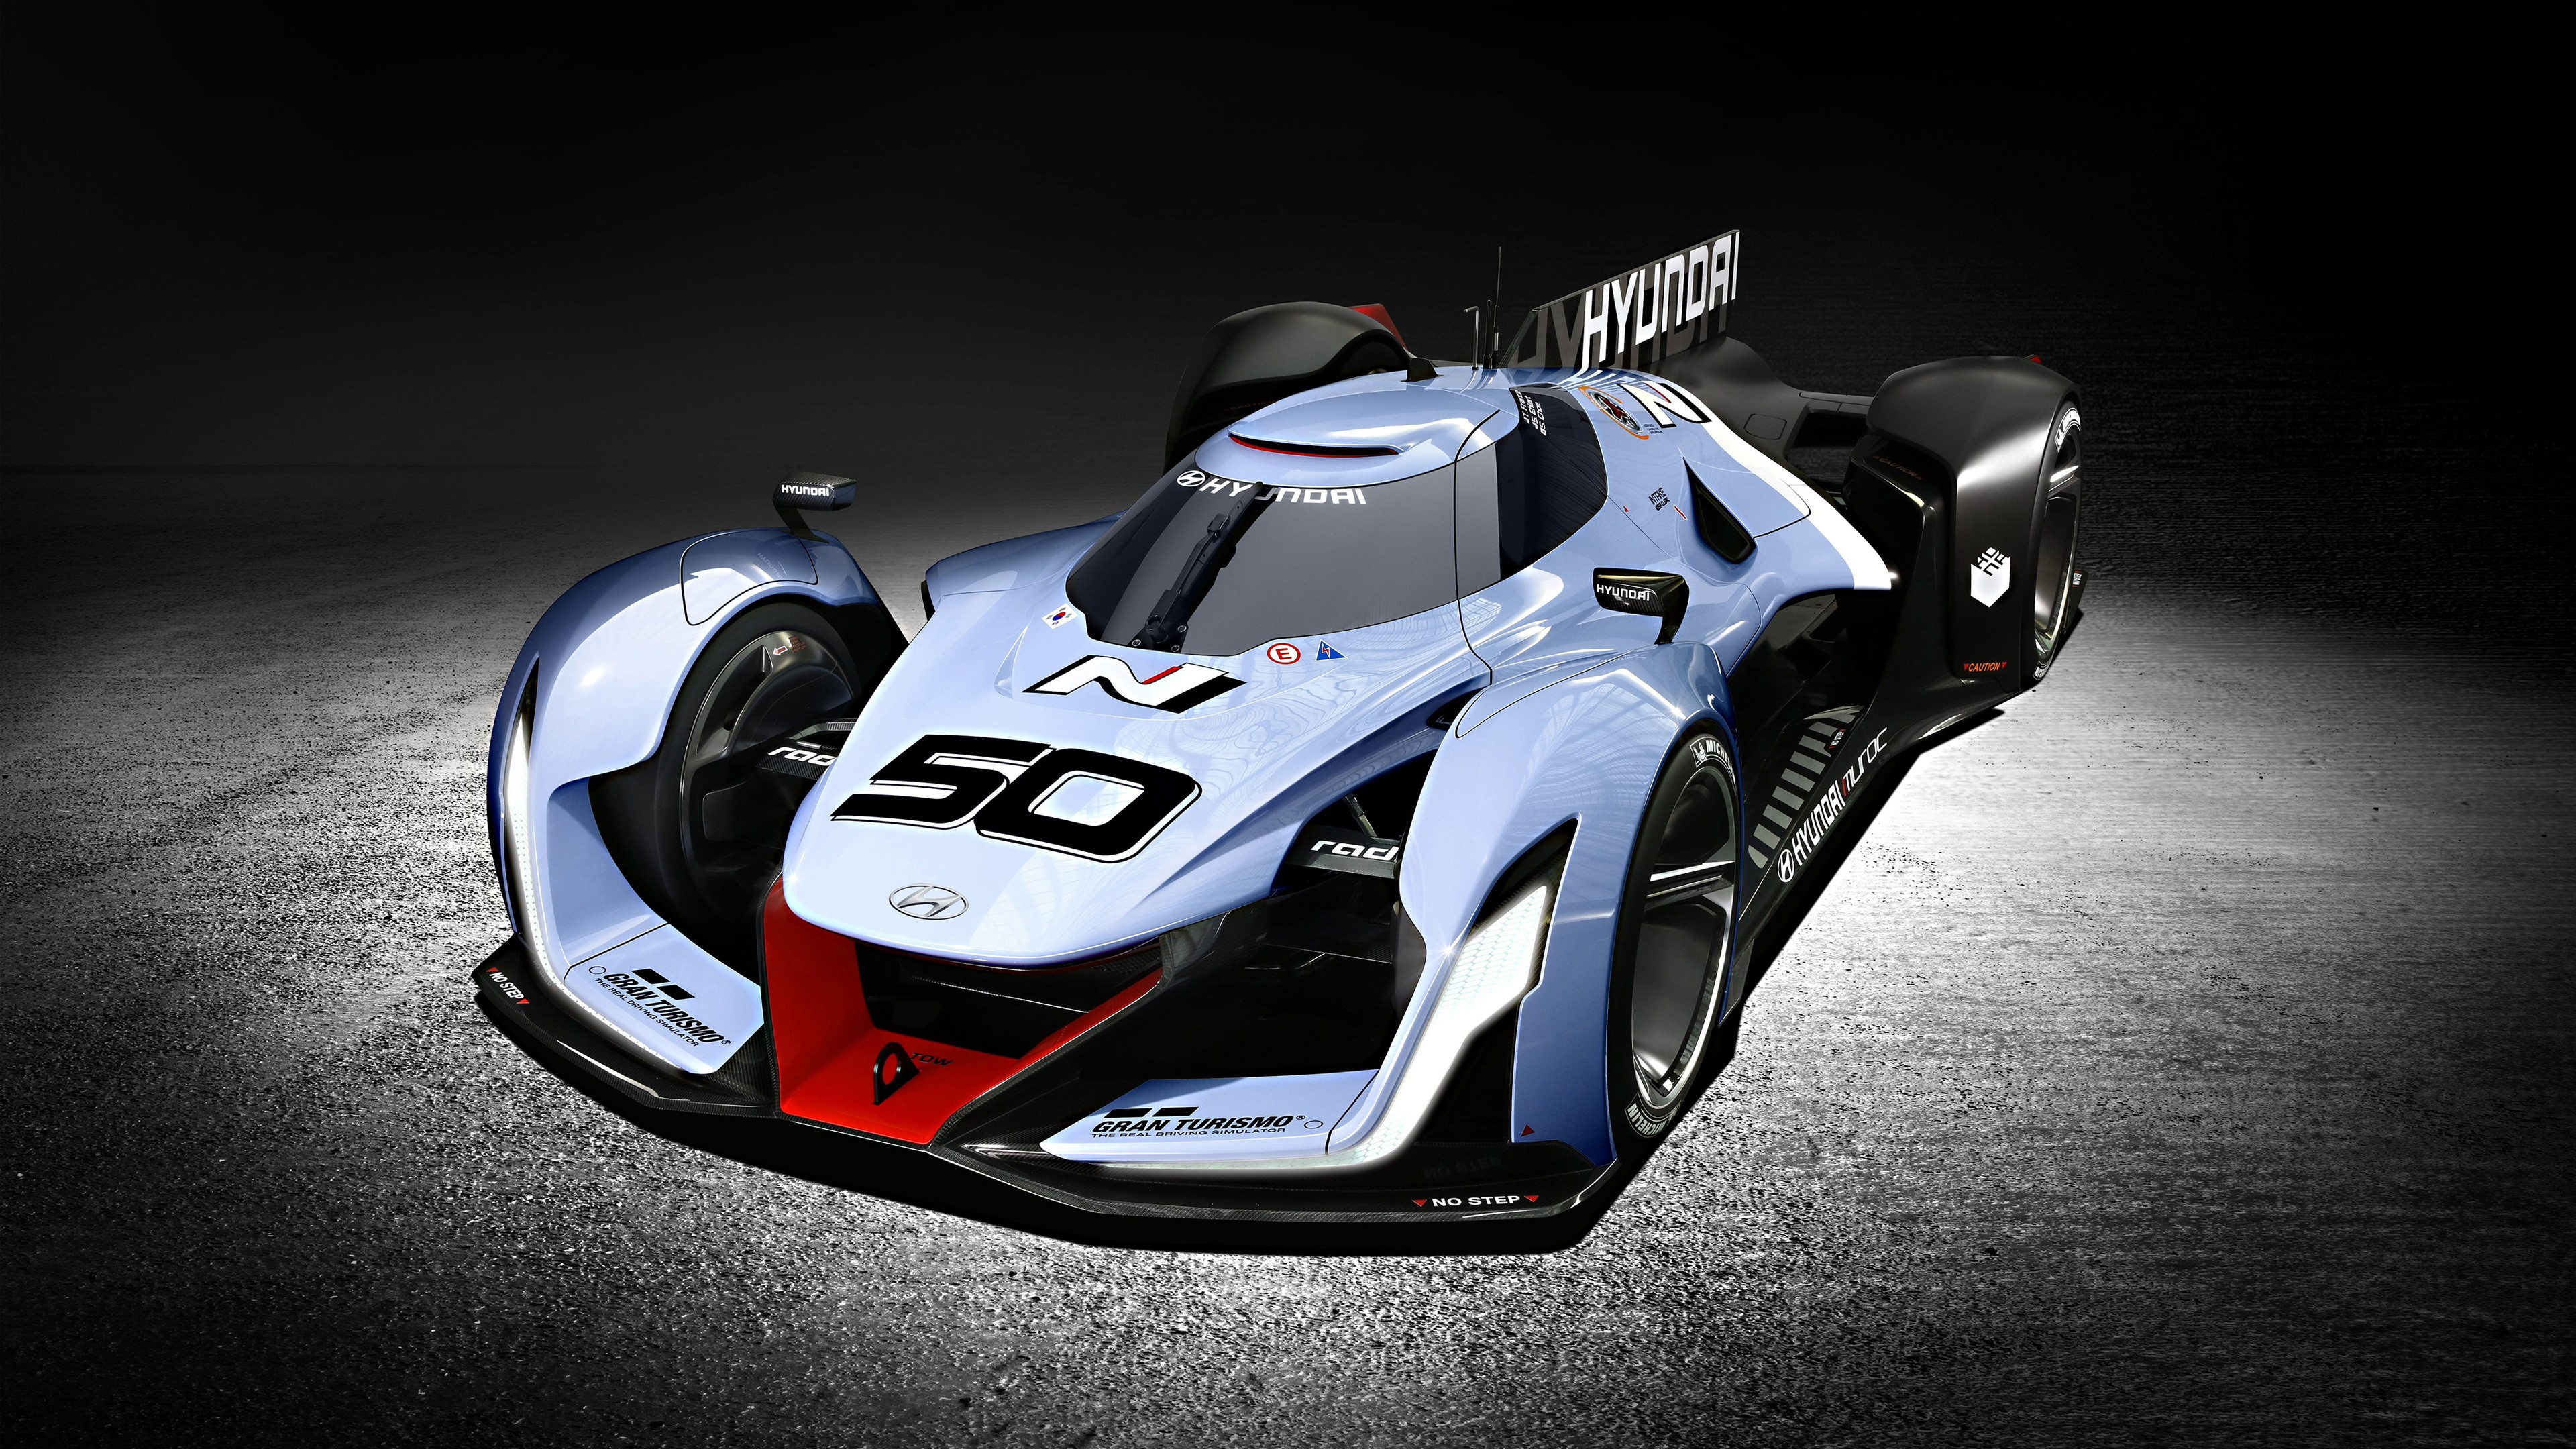 hyundai 2025 vision turismo gran hd gt 4k ultra wallpapers 현대 그란투리스모 비전 resolutions 2160